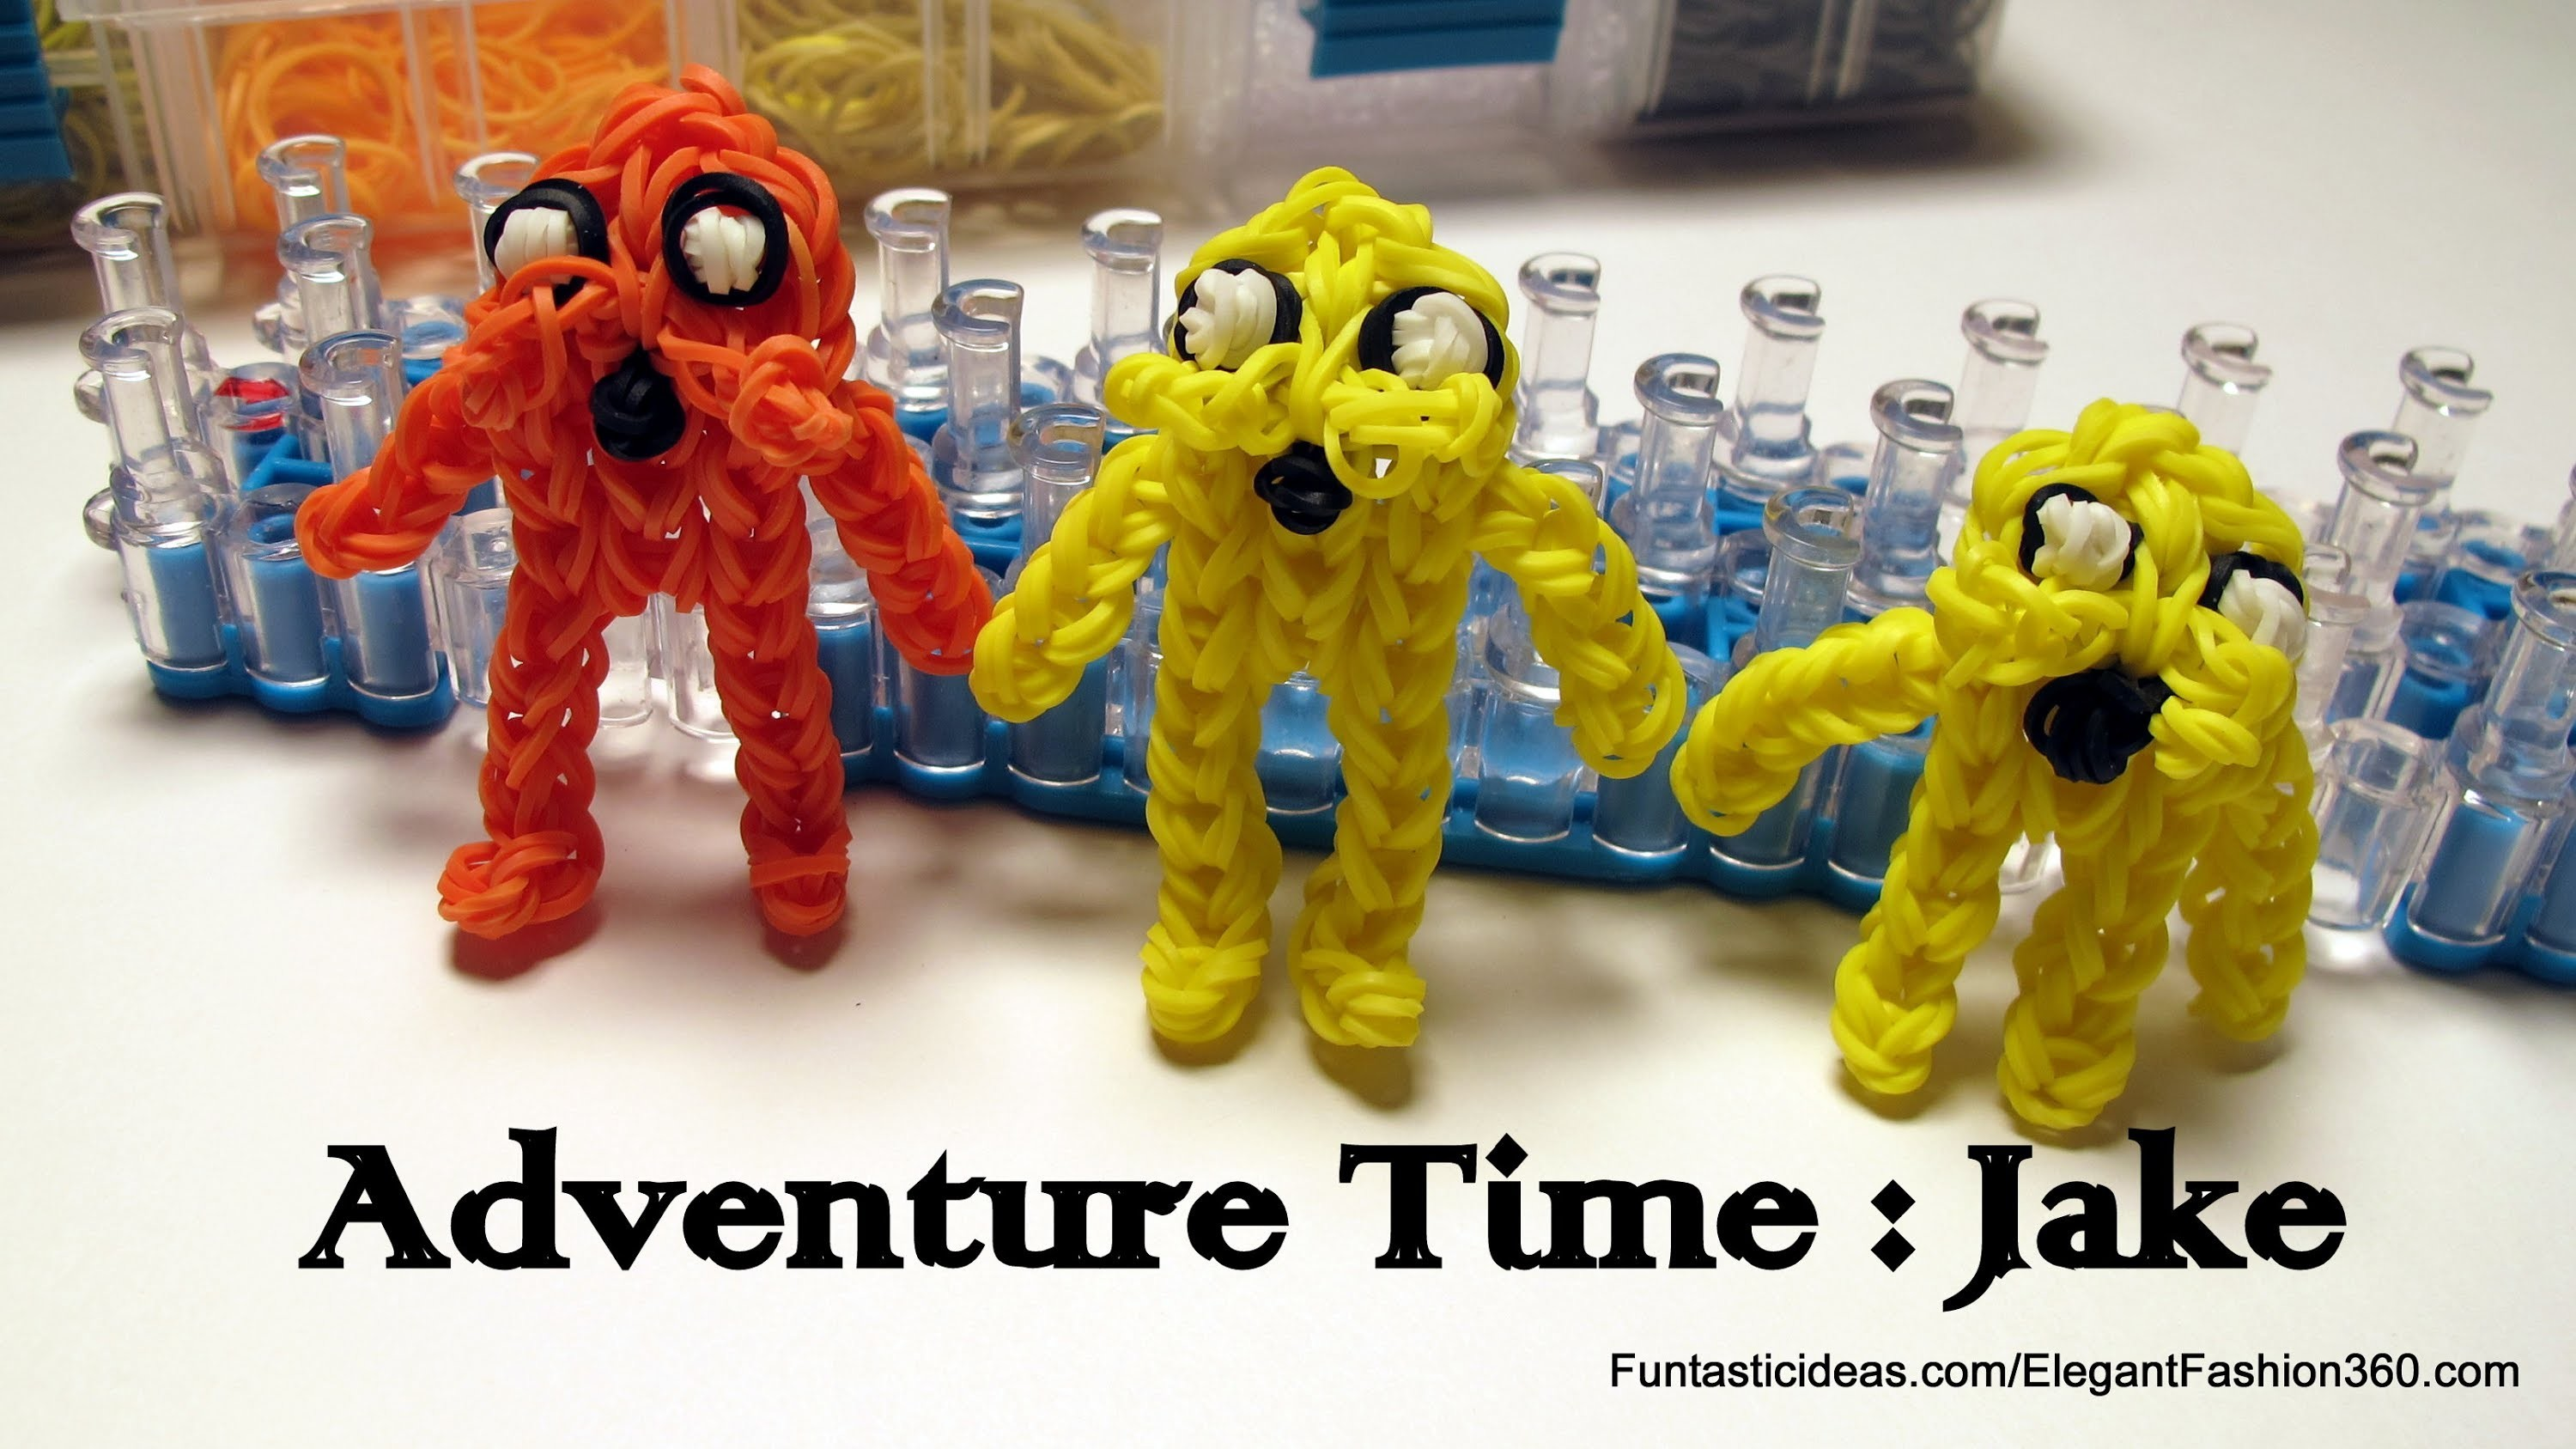 Adventure Time: Jake Action Figure.Character - How to Rainbow Loom Design